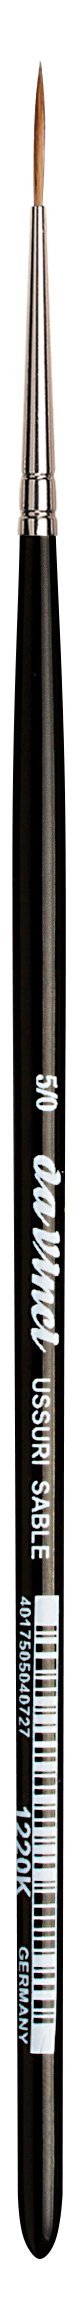 da Vinci Watercolor Series 1220K Liner/Rigger Paint Brush, Round Russian Red Sable, Size 5/0